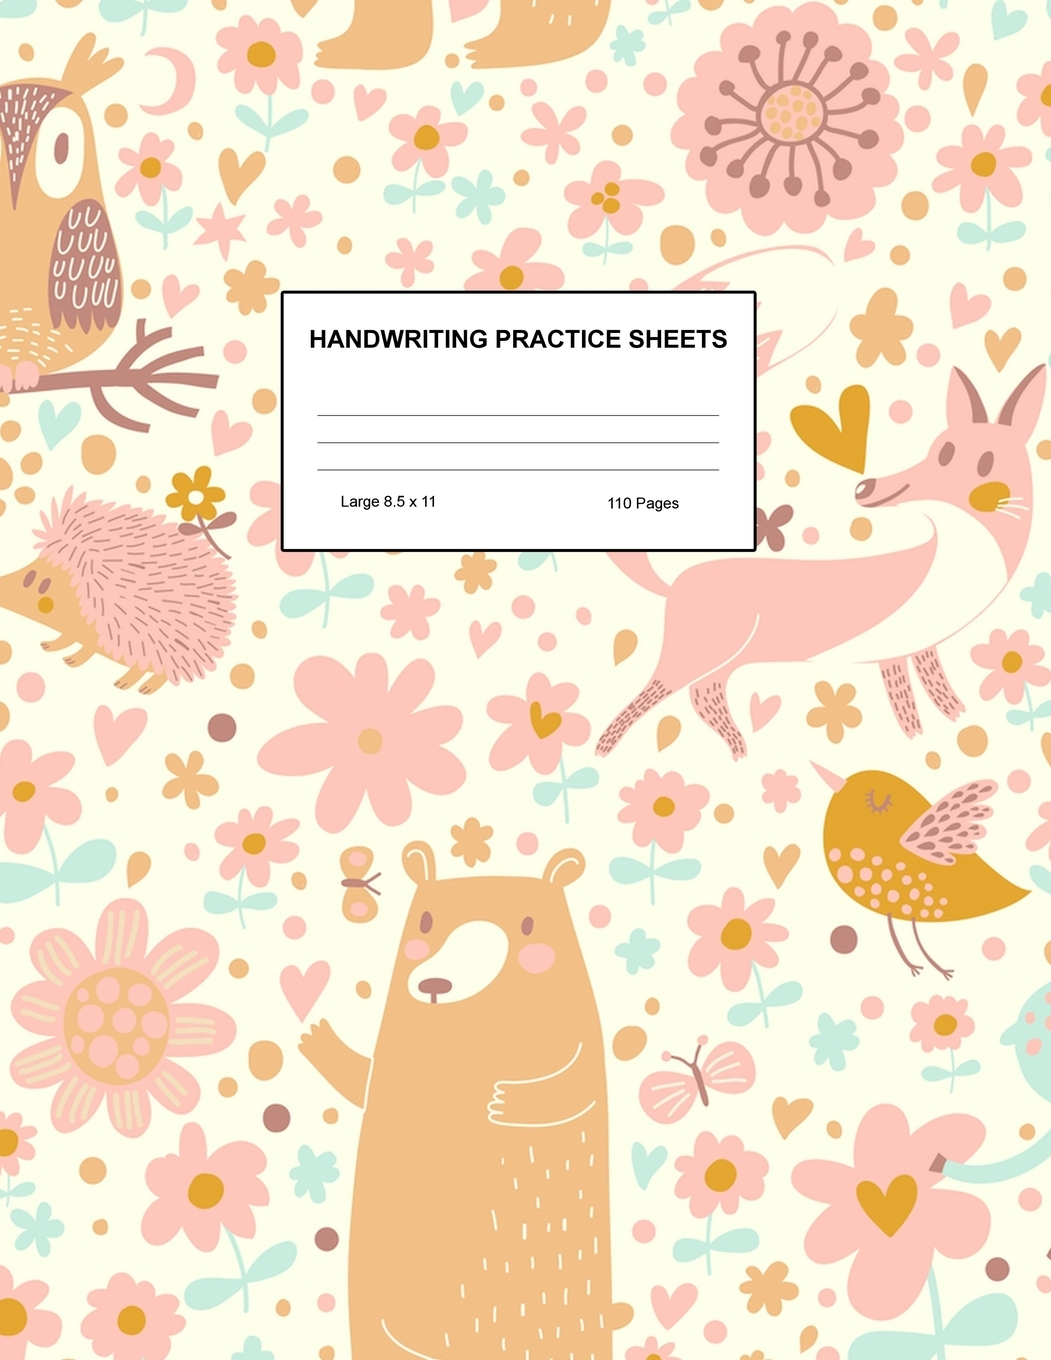 Handwriting Practice Sheets Cute Blank Lined Paper